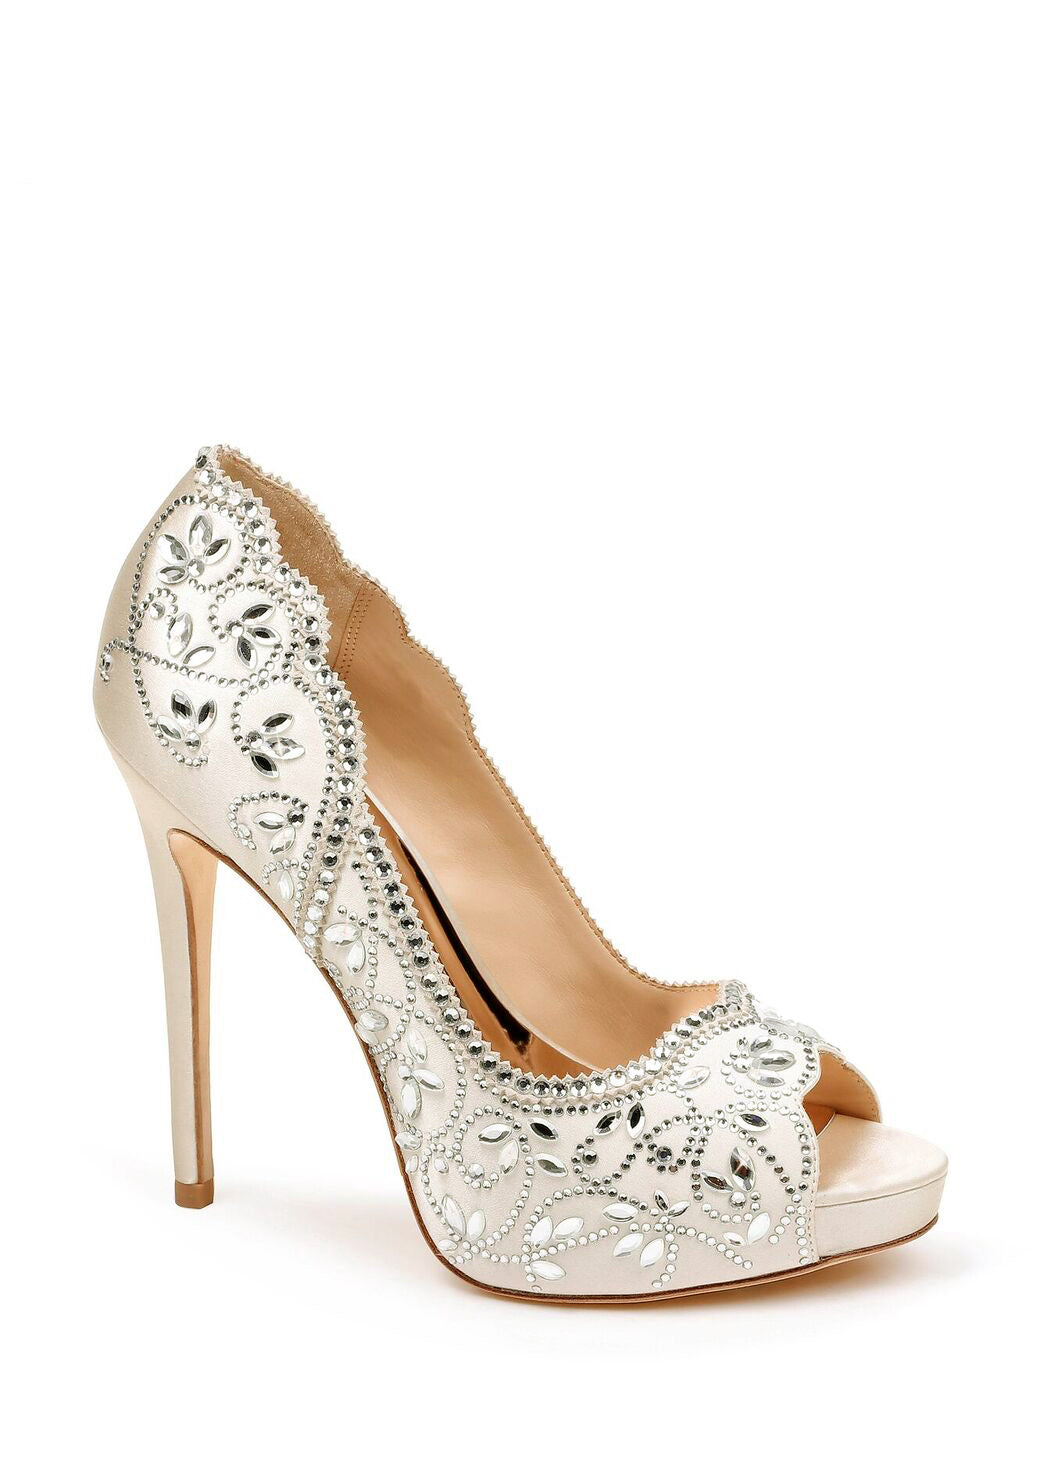 d11ed4c8b223 Badgley Mischka Wedding Shoes - Eternal Bridal